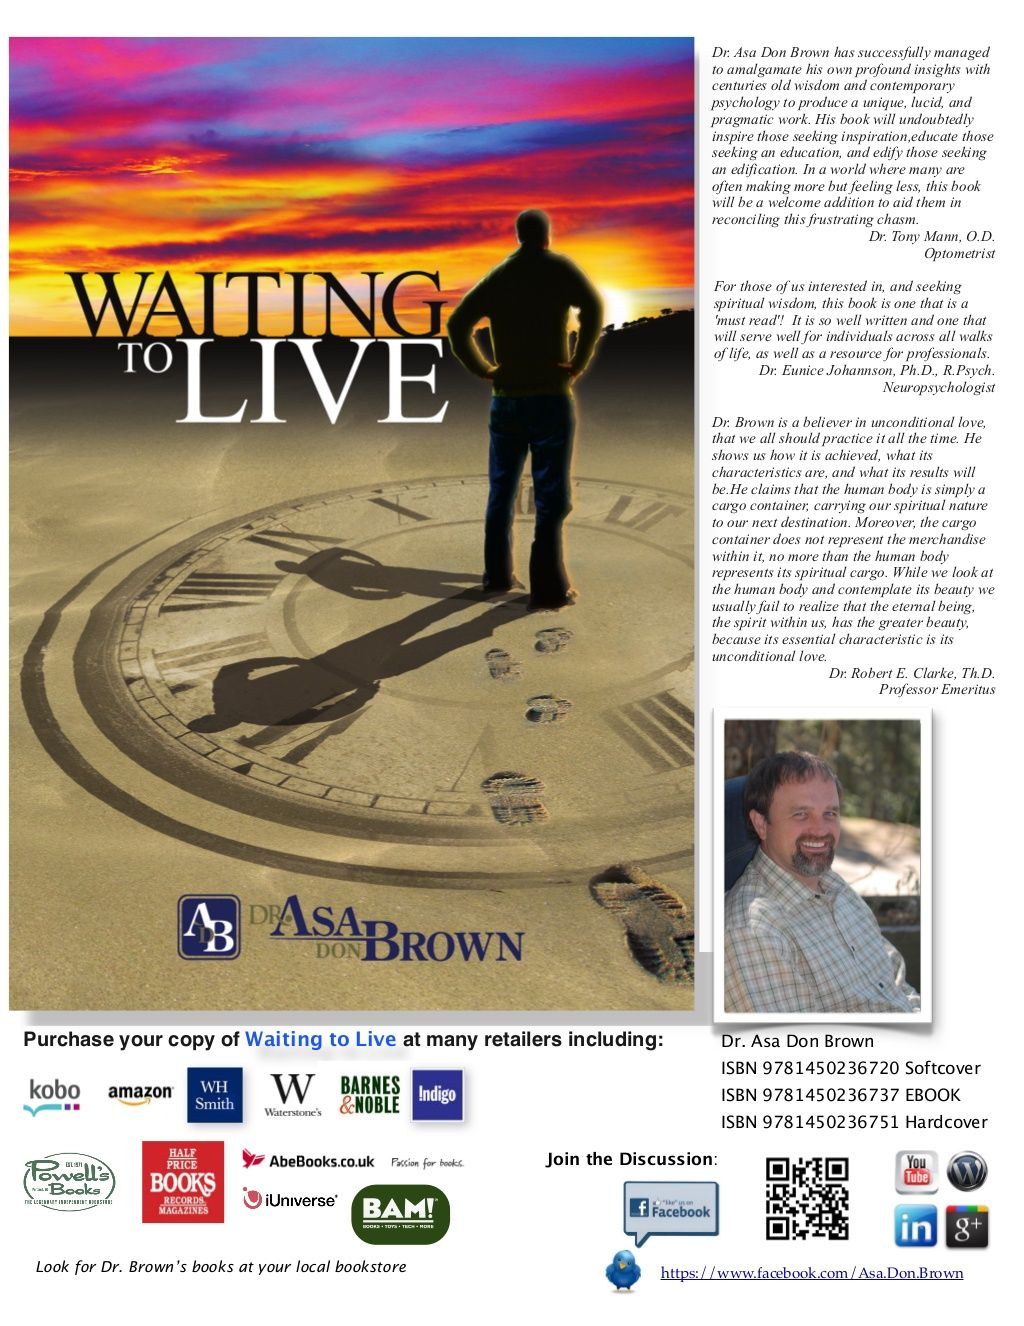 Waiting to Live Poster by Dr. Asa Don Brown via slideshare